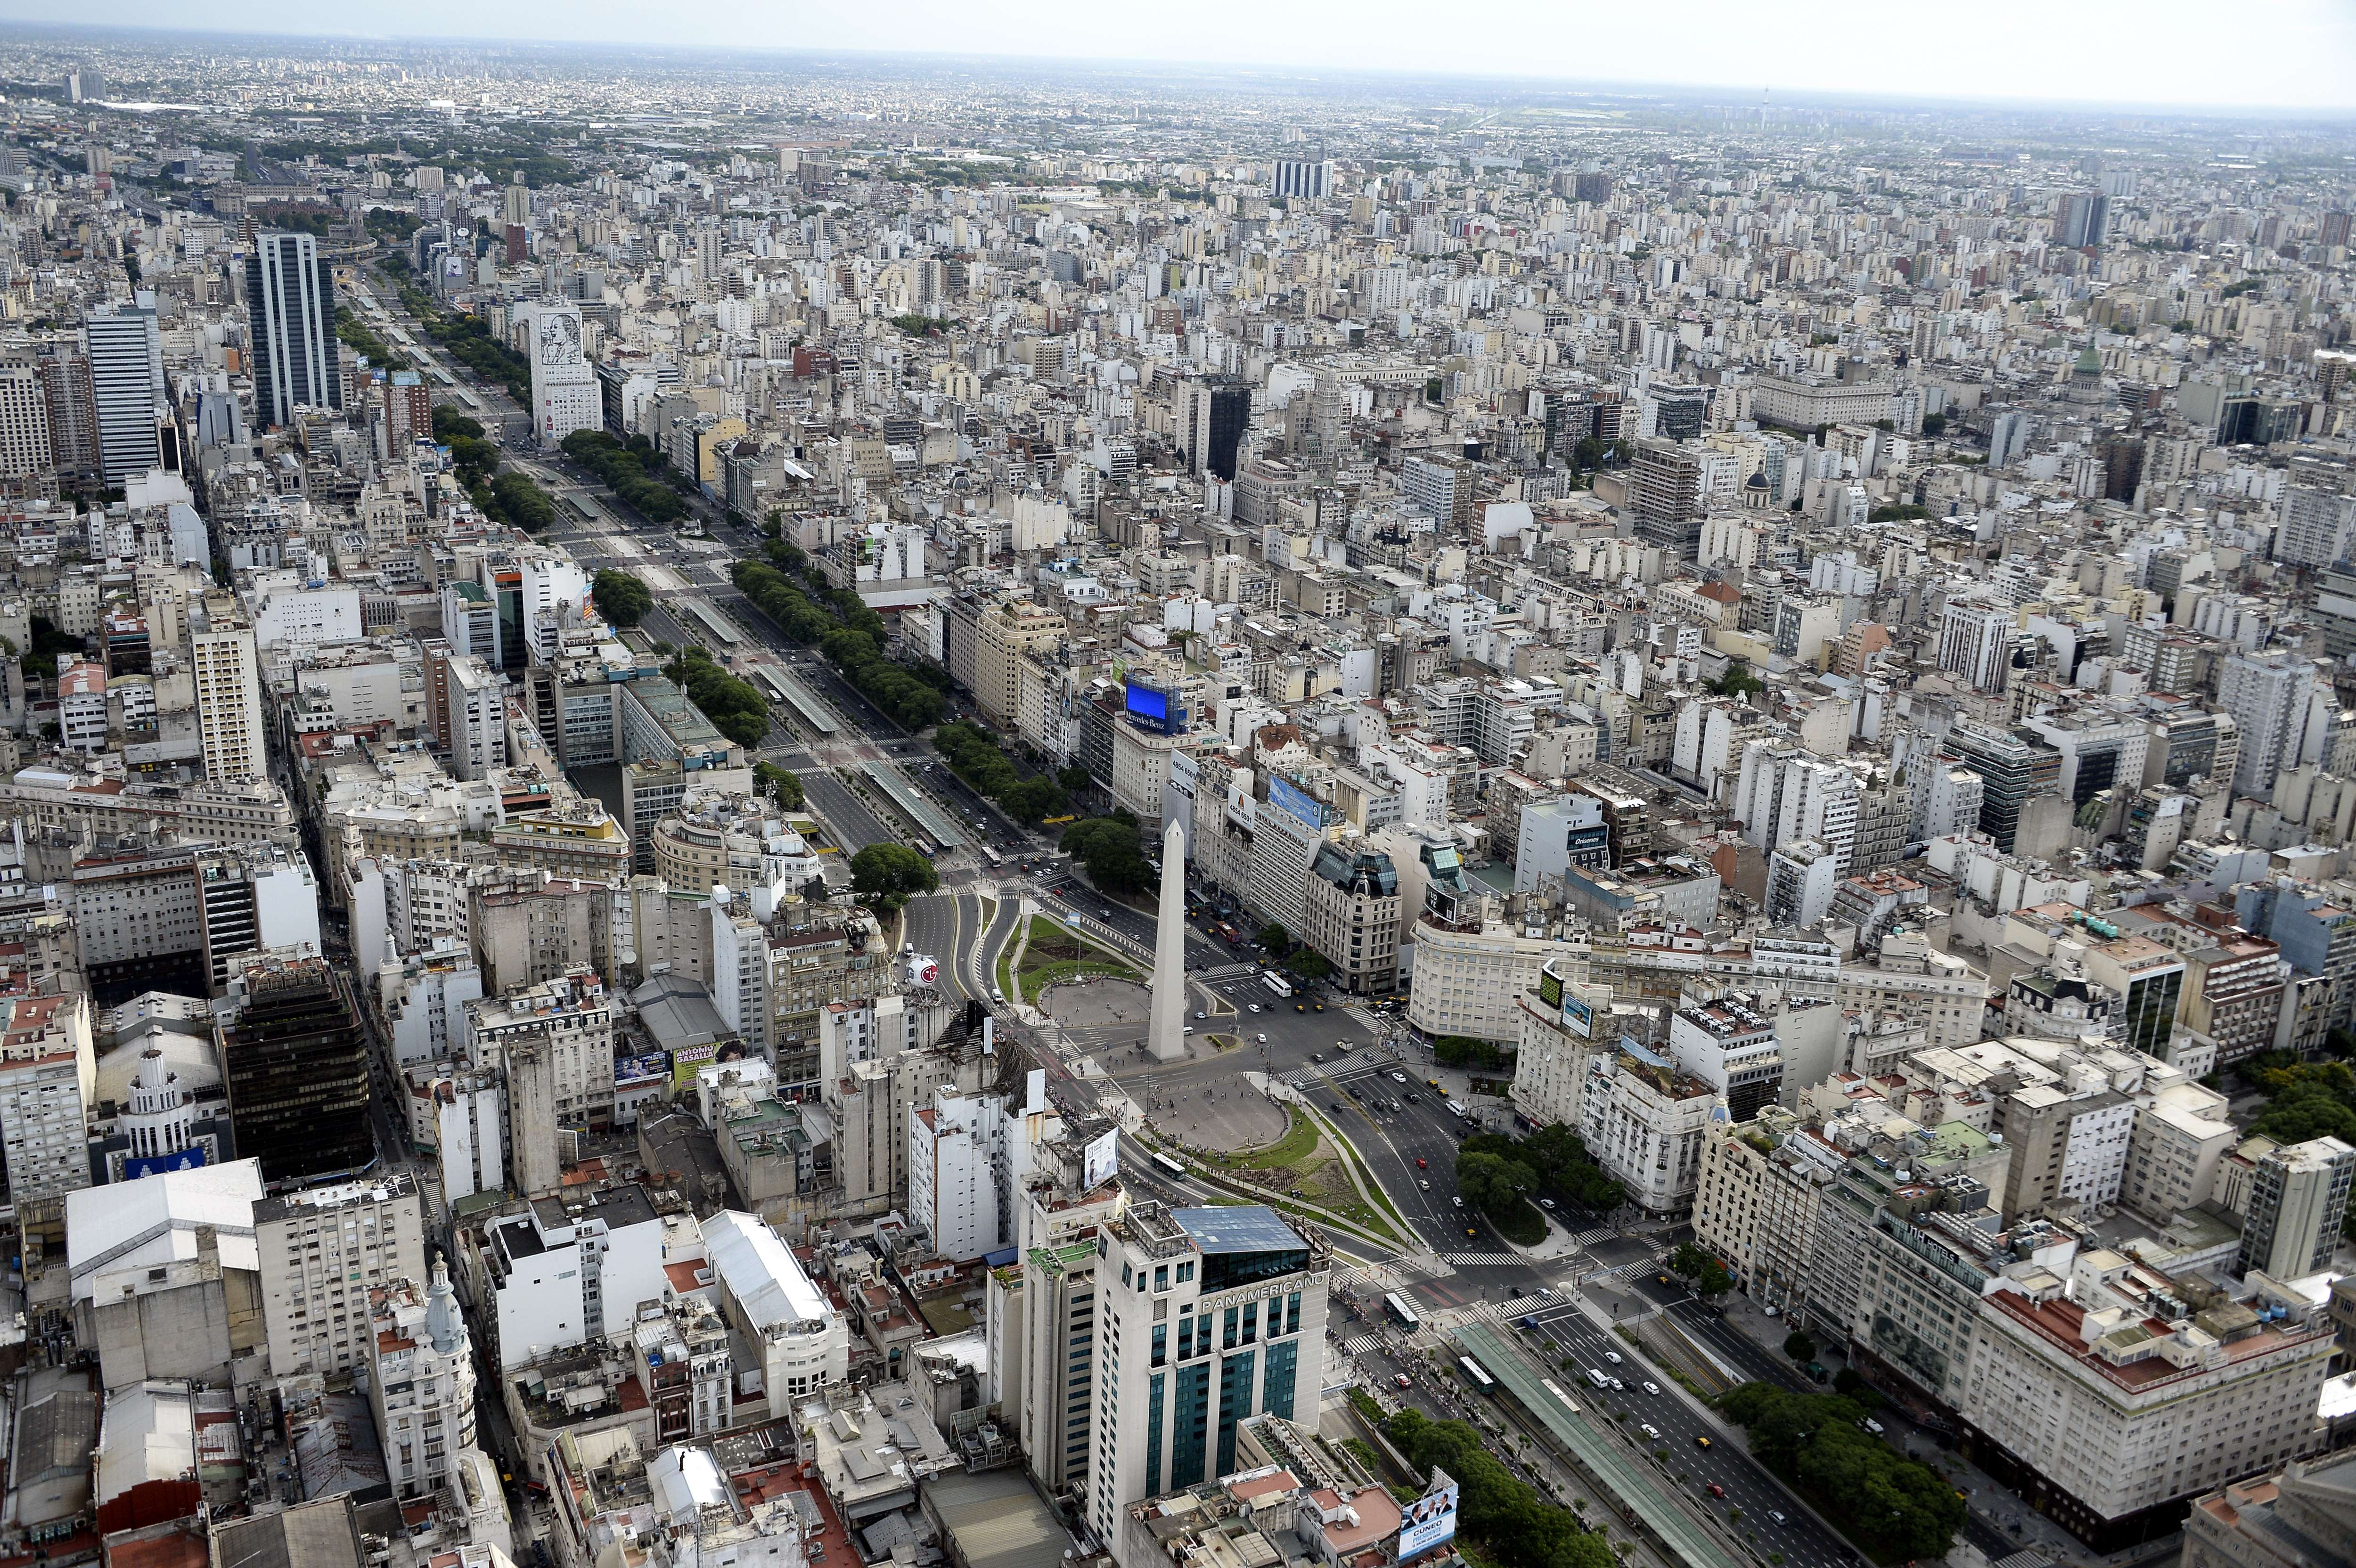 Aerial picture taken over Buenos Aires, Argentina, on January 3, 2015. AFP PHOTO / FRANCK FIFE (Photo credit should read FRANCK FIFE/AFP/Getty Images)